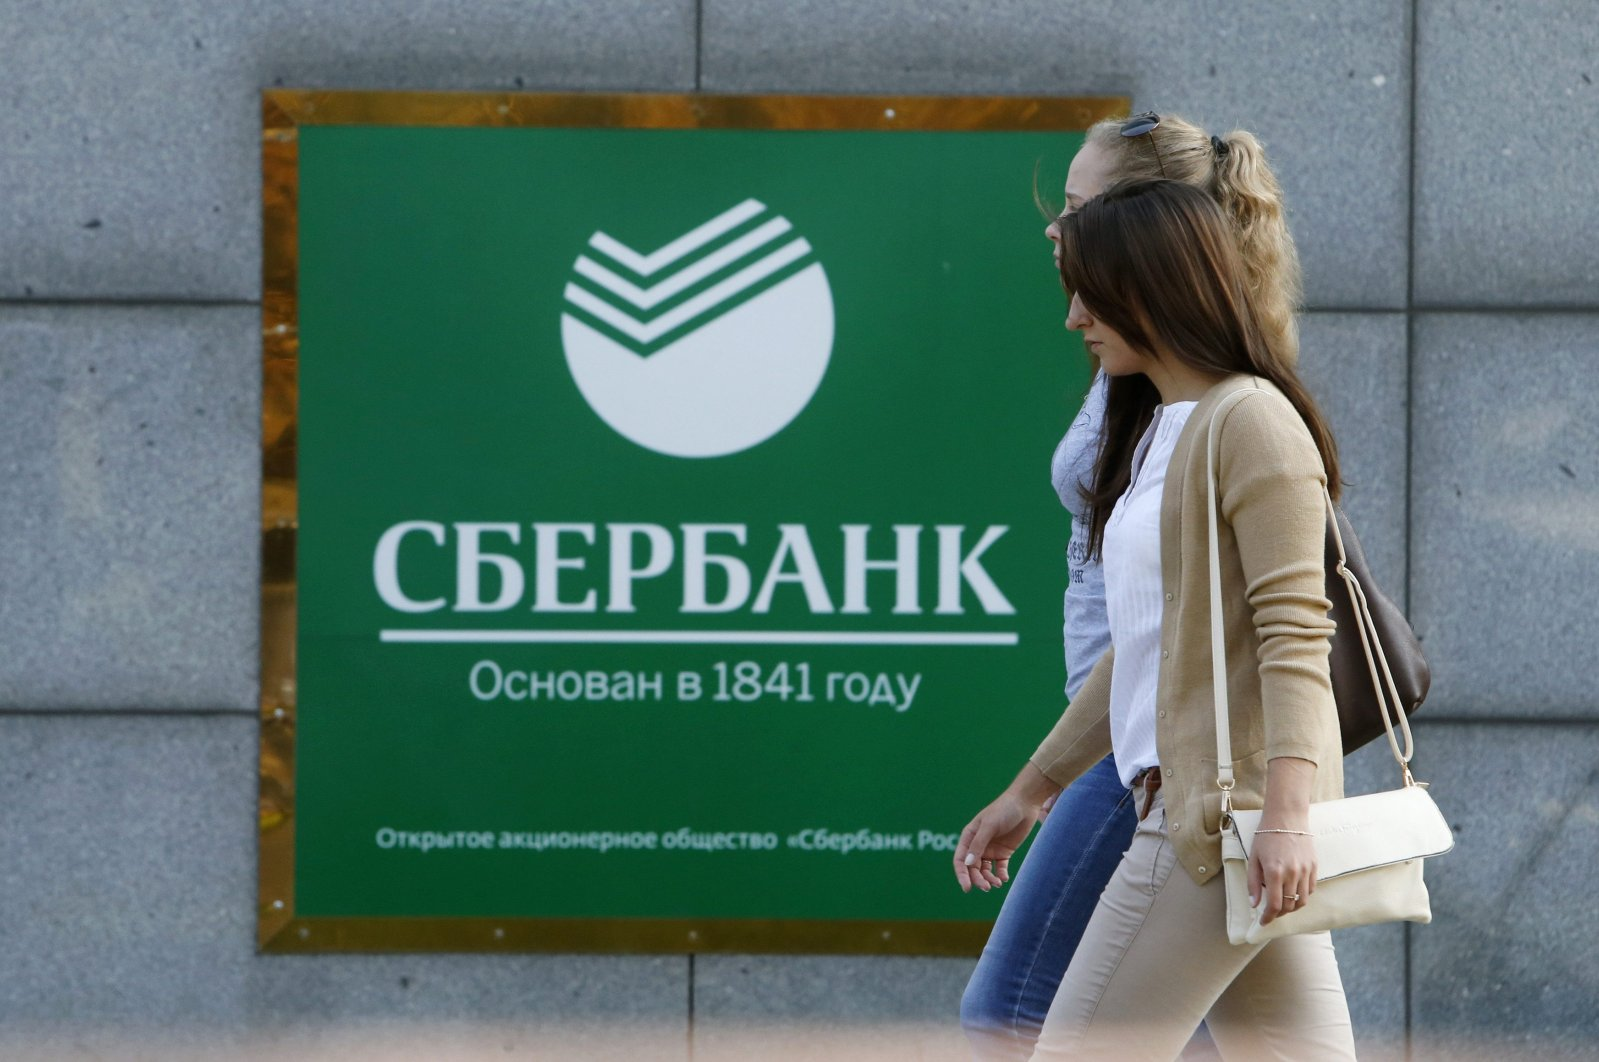 Women walk past an office of Sberbank in Moscow, Russia on Sept. 12, 2014. (Reuters Photo)